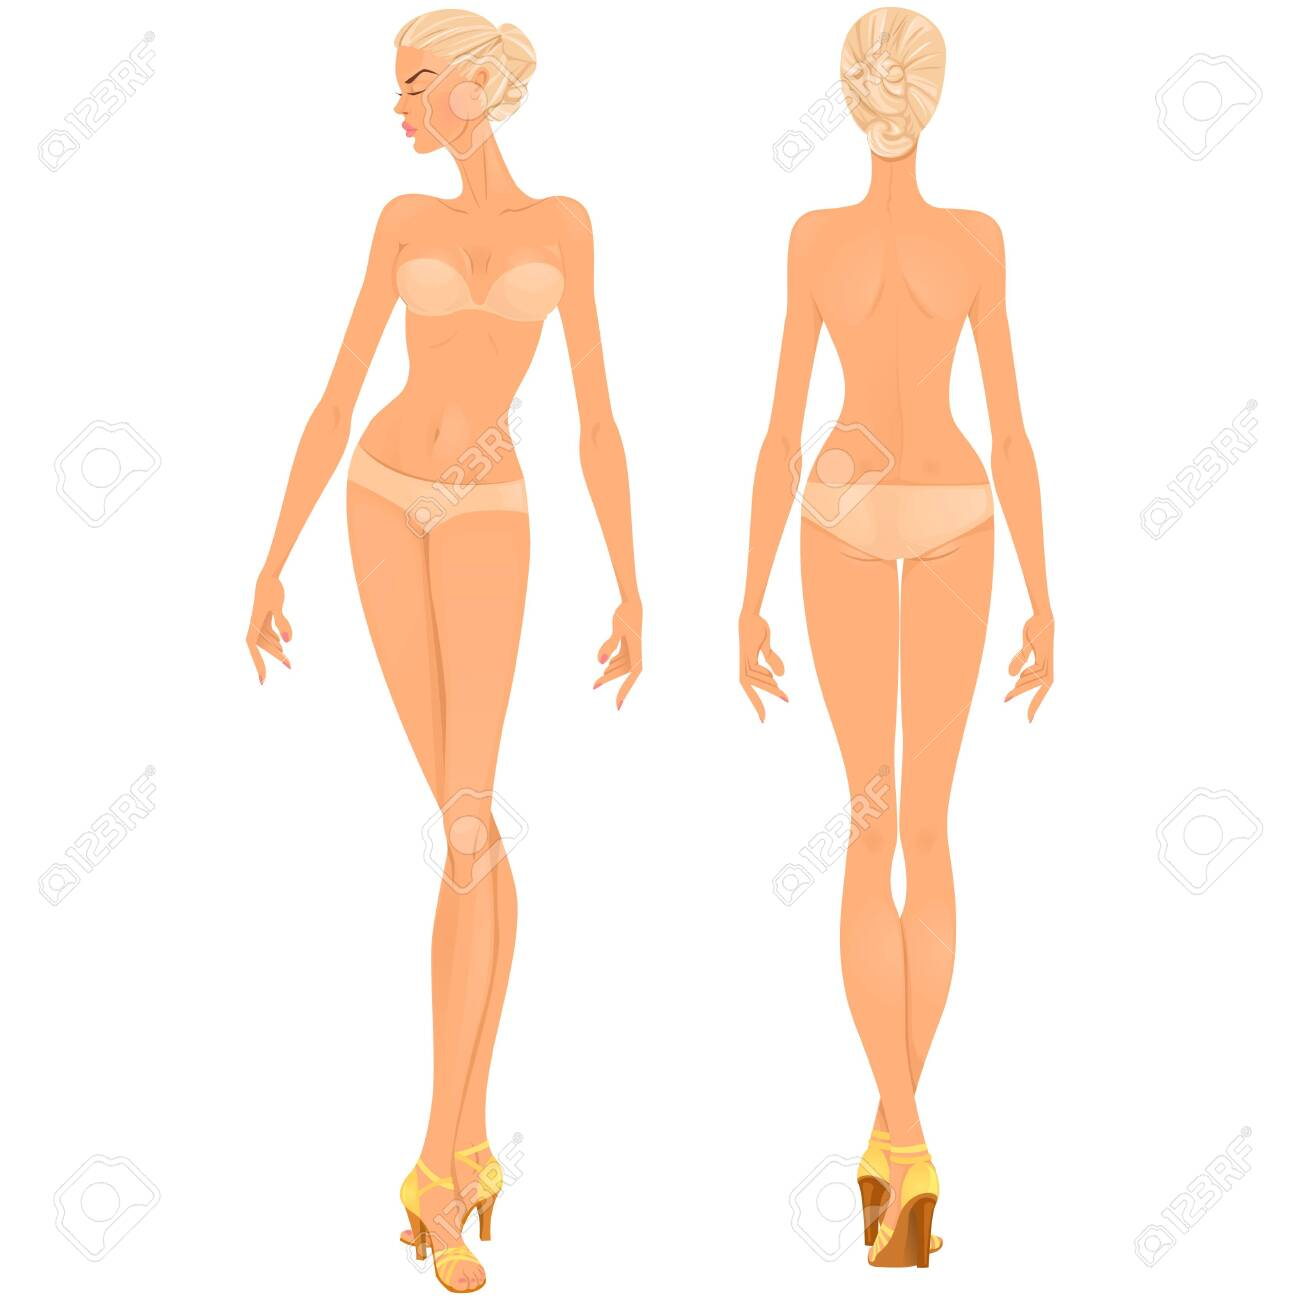 Beautiful young woman. Body template, front and back views for clothing design purposes or paper doll game. - 150361018